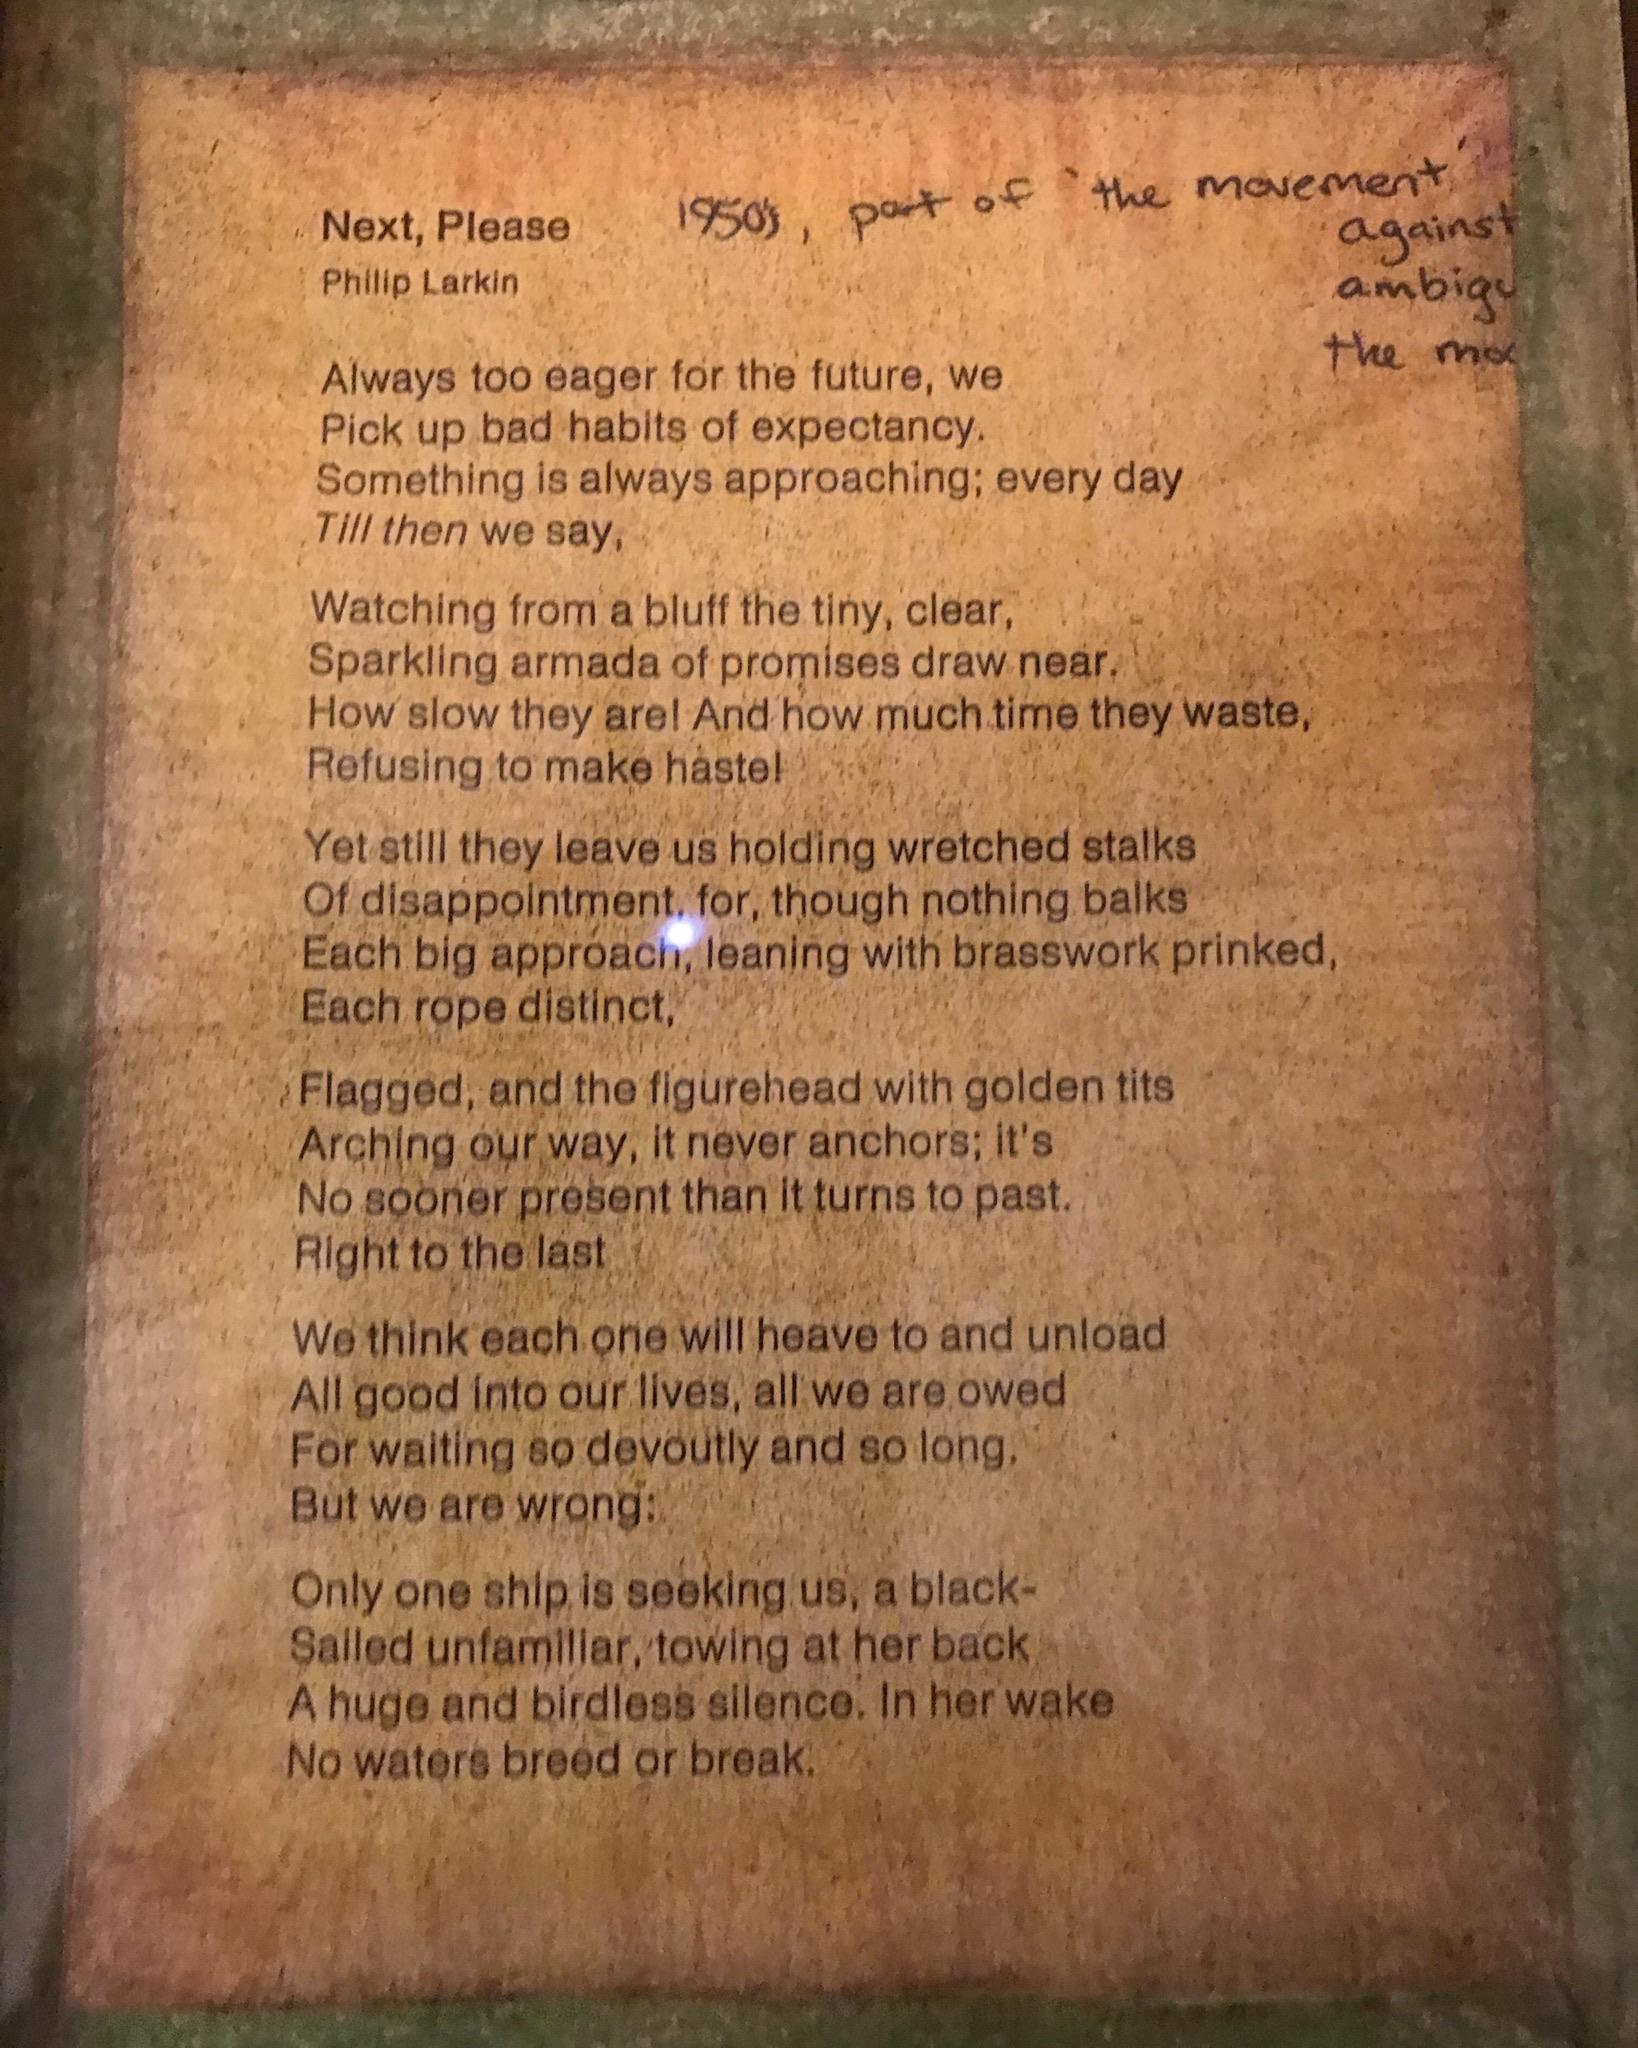 [Image] This poem was part of a class handout years ago and I found it so motivating that I colored and framed it. Still motivates me to this day.